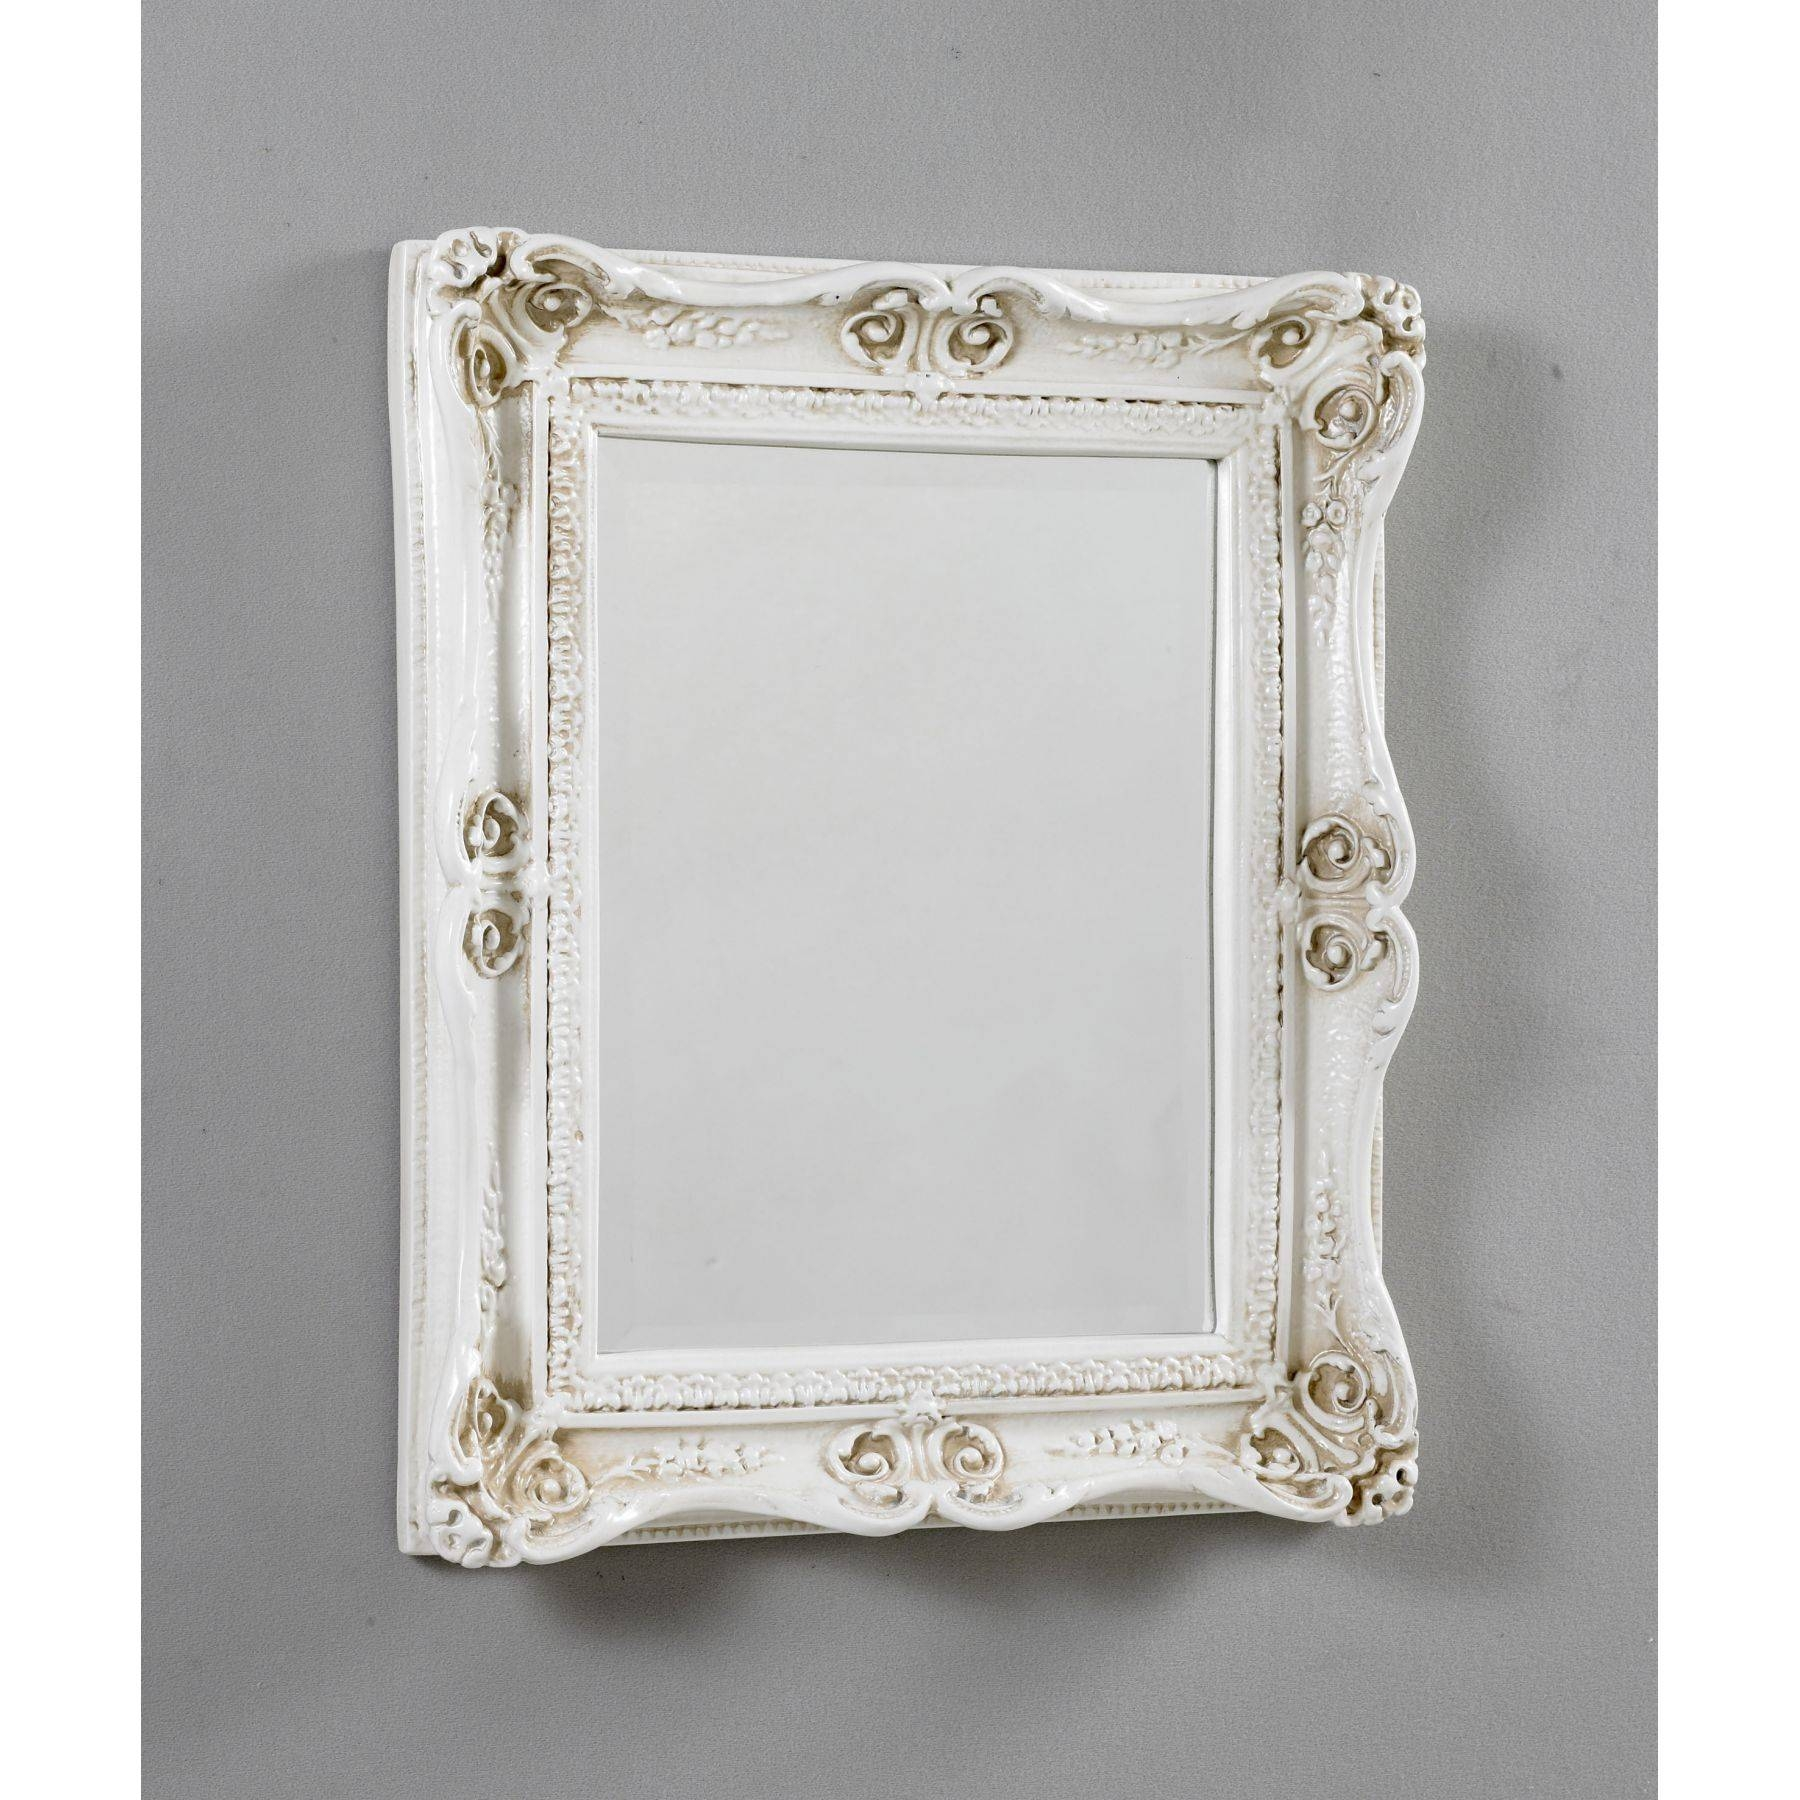 Home Decor: Antique Mirrors | The Home Sitter For Antique Mirrors (View 13 of 25)